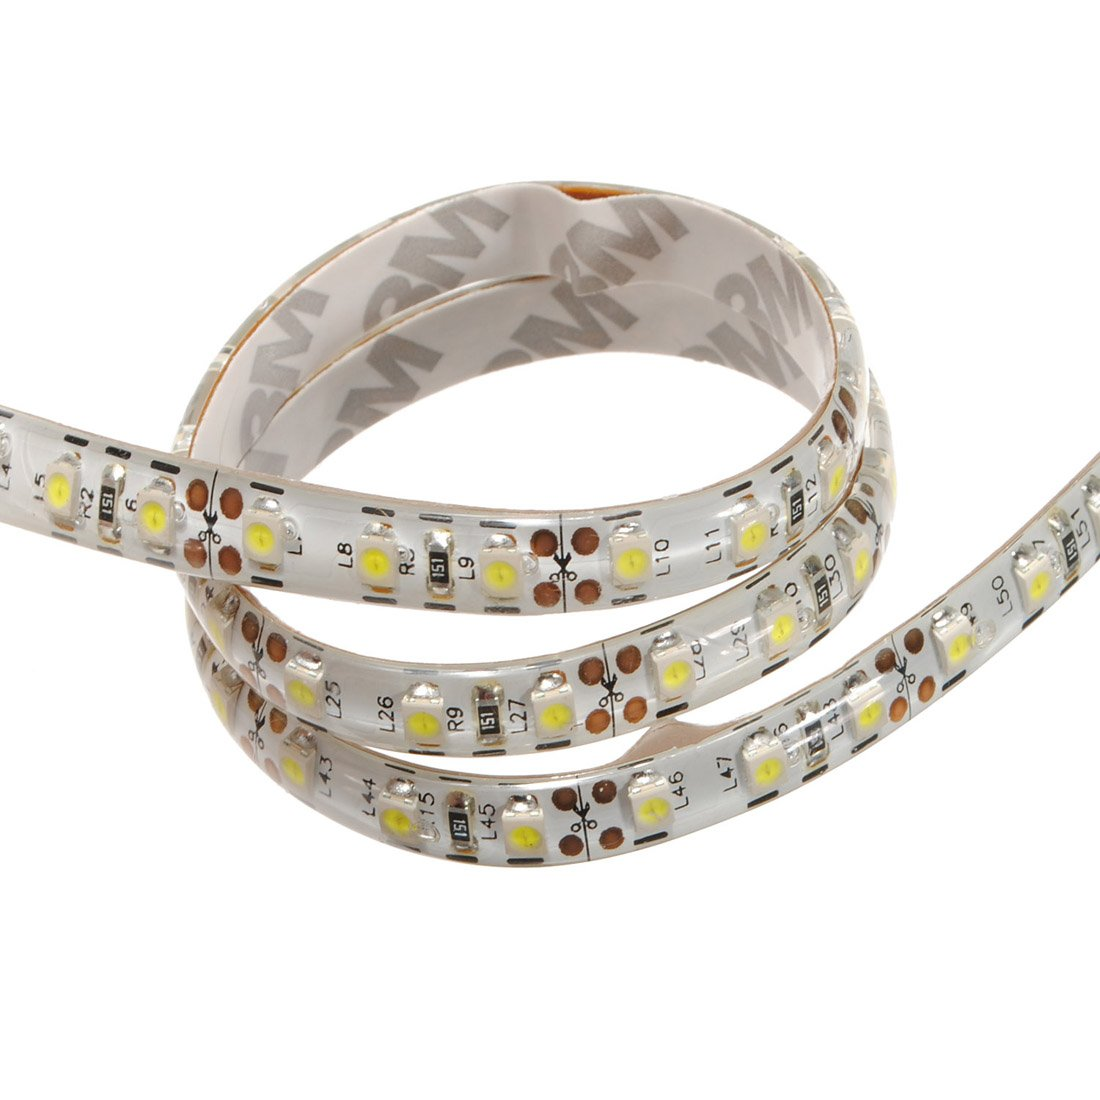 Nflc Sodialr5m 600 Smd 3528 White Waterproof Led Strip Marquee Silver Queen Montes 50g Light Cool Ip65